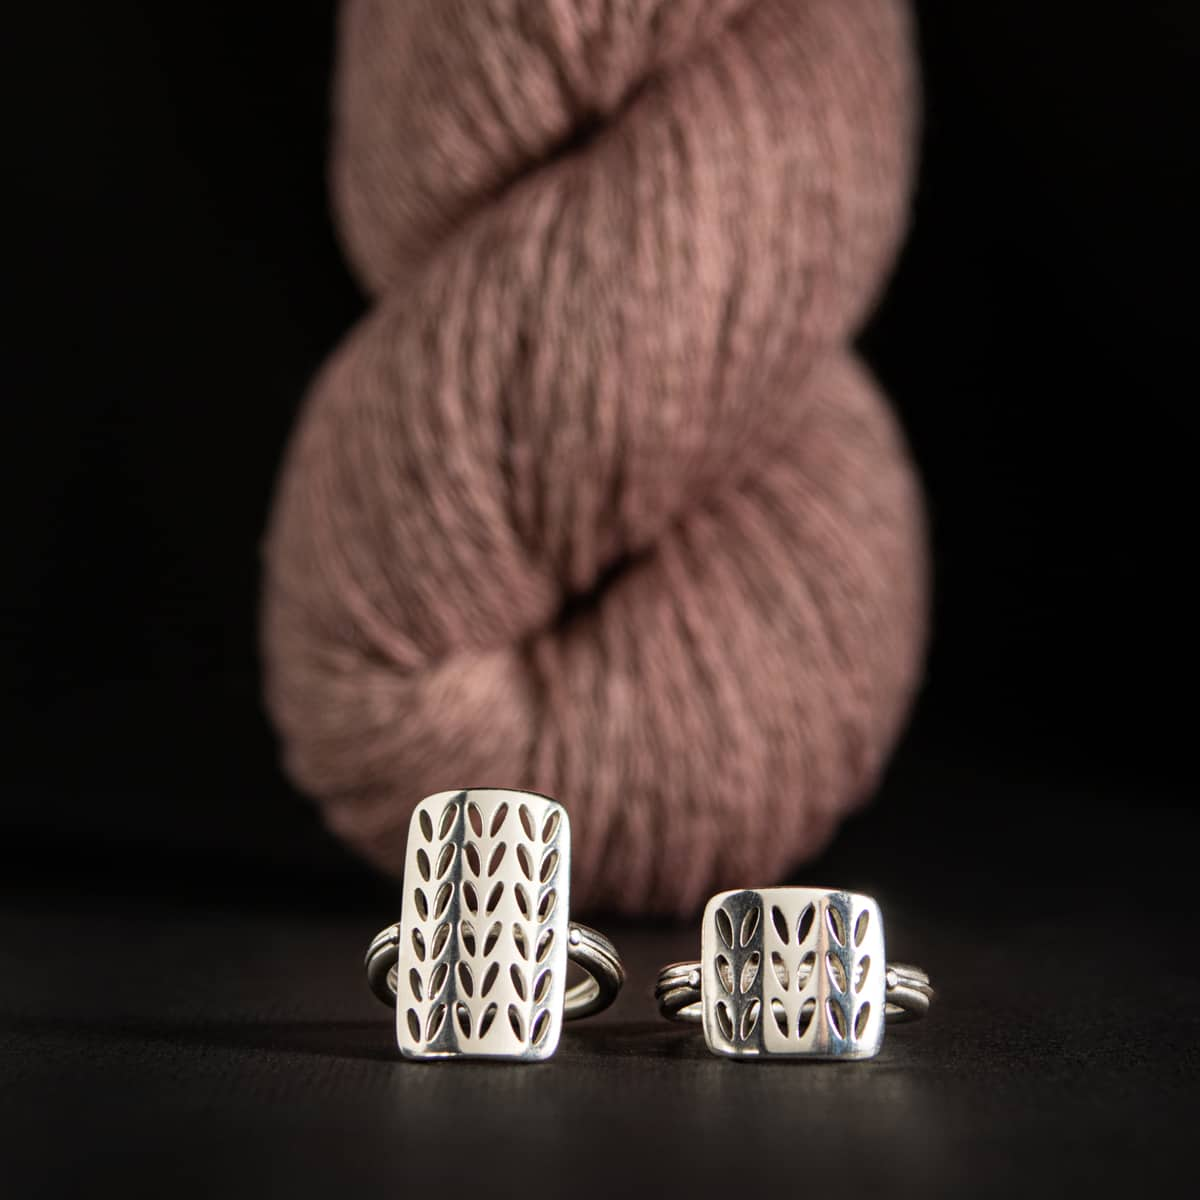 Silver rings sit in front of a skein of pink yarn.